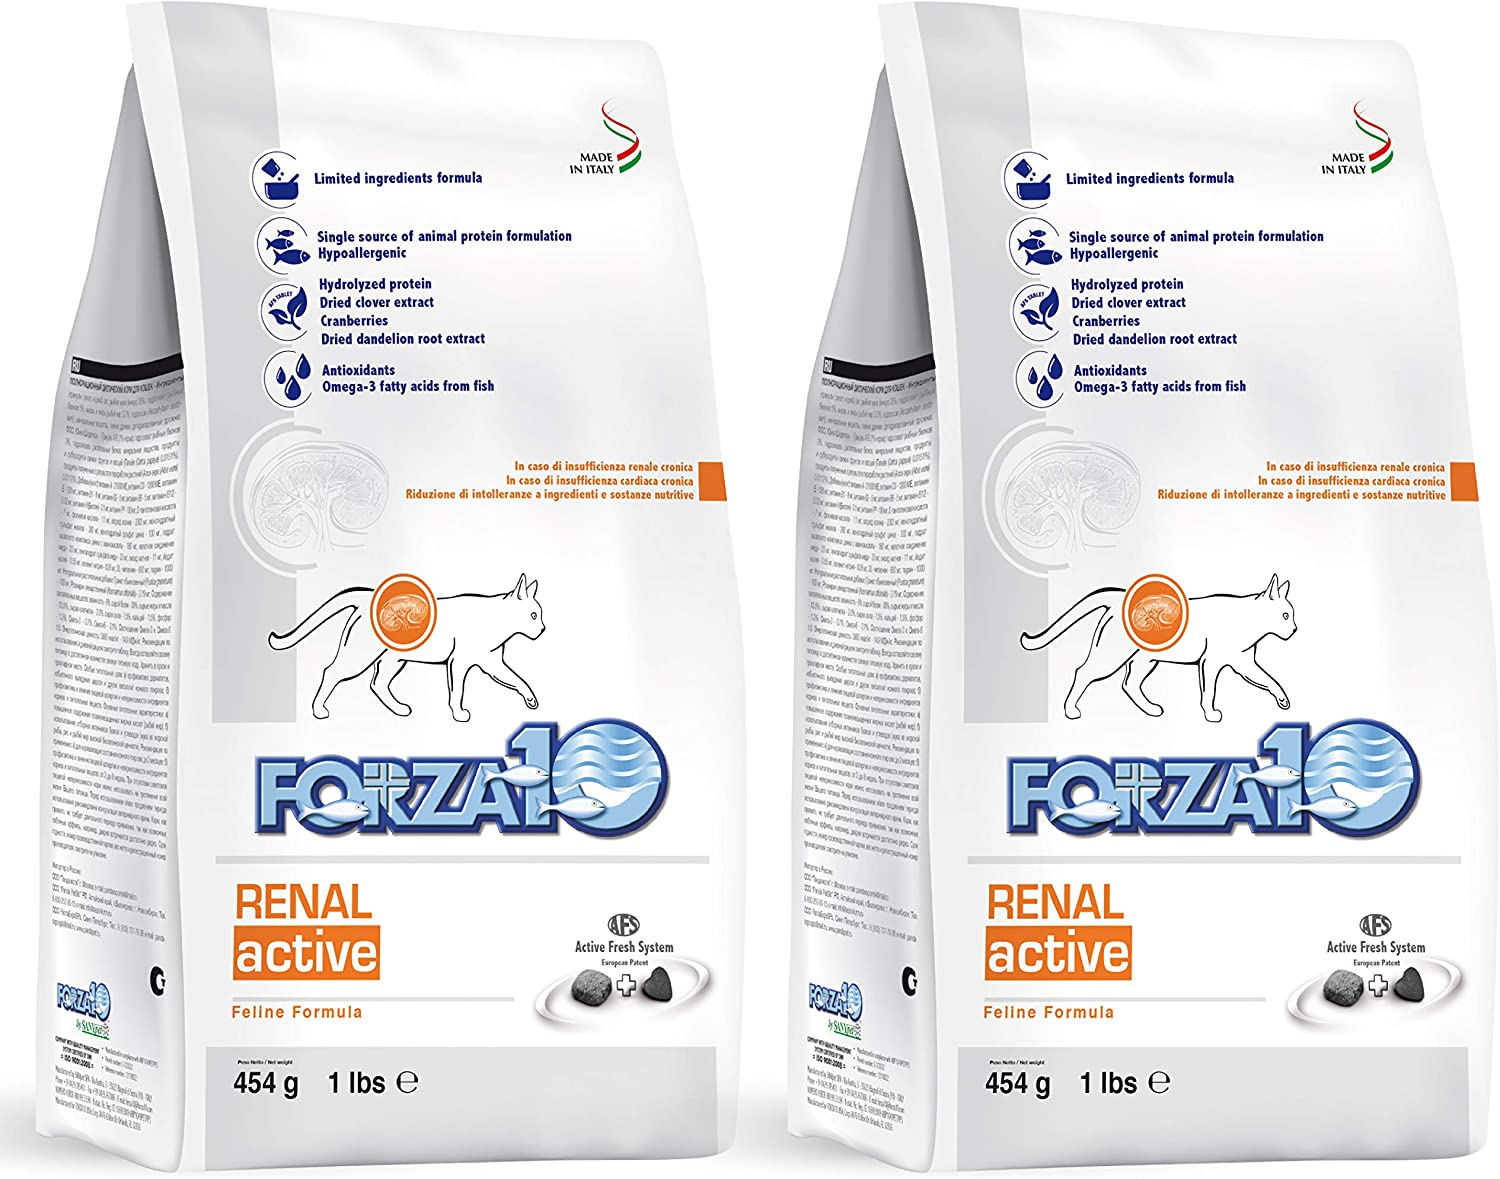 Forza10 Active Kidney Free shipping New Renal Cat for Food Adult Cats Super sale period limited